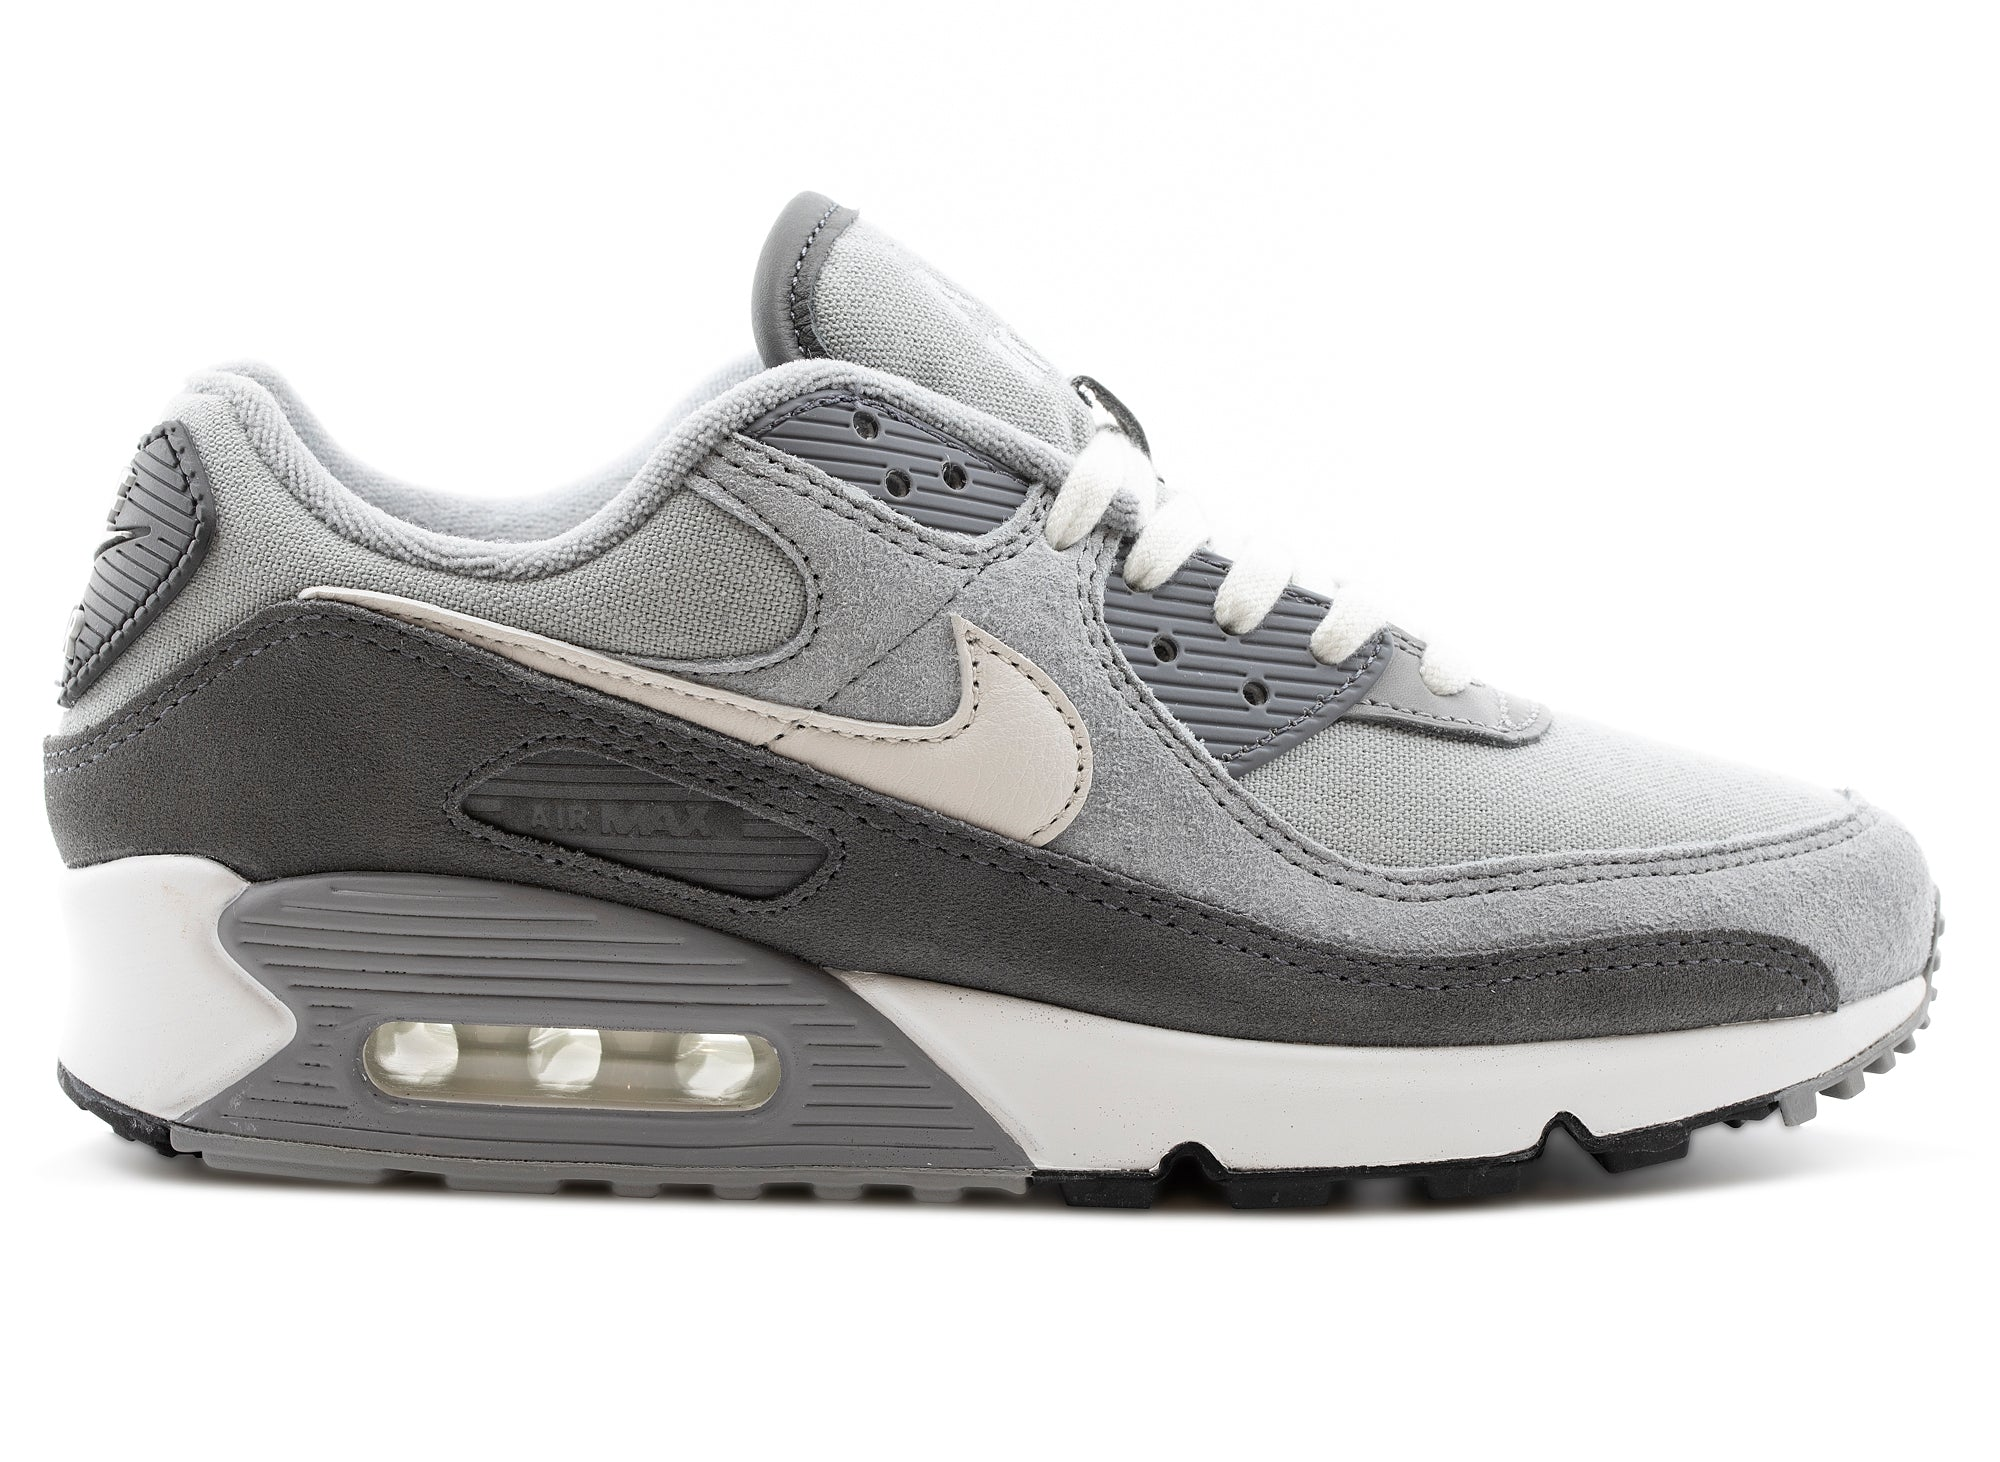 Nike Air Max 90 PRM 'Light Smoke Grey' xld